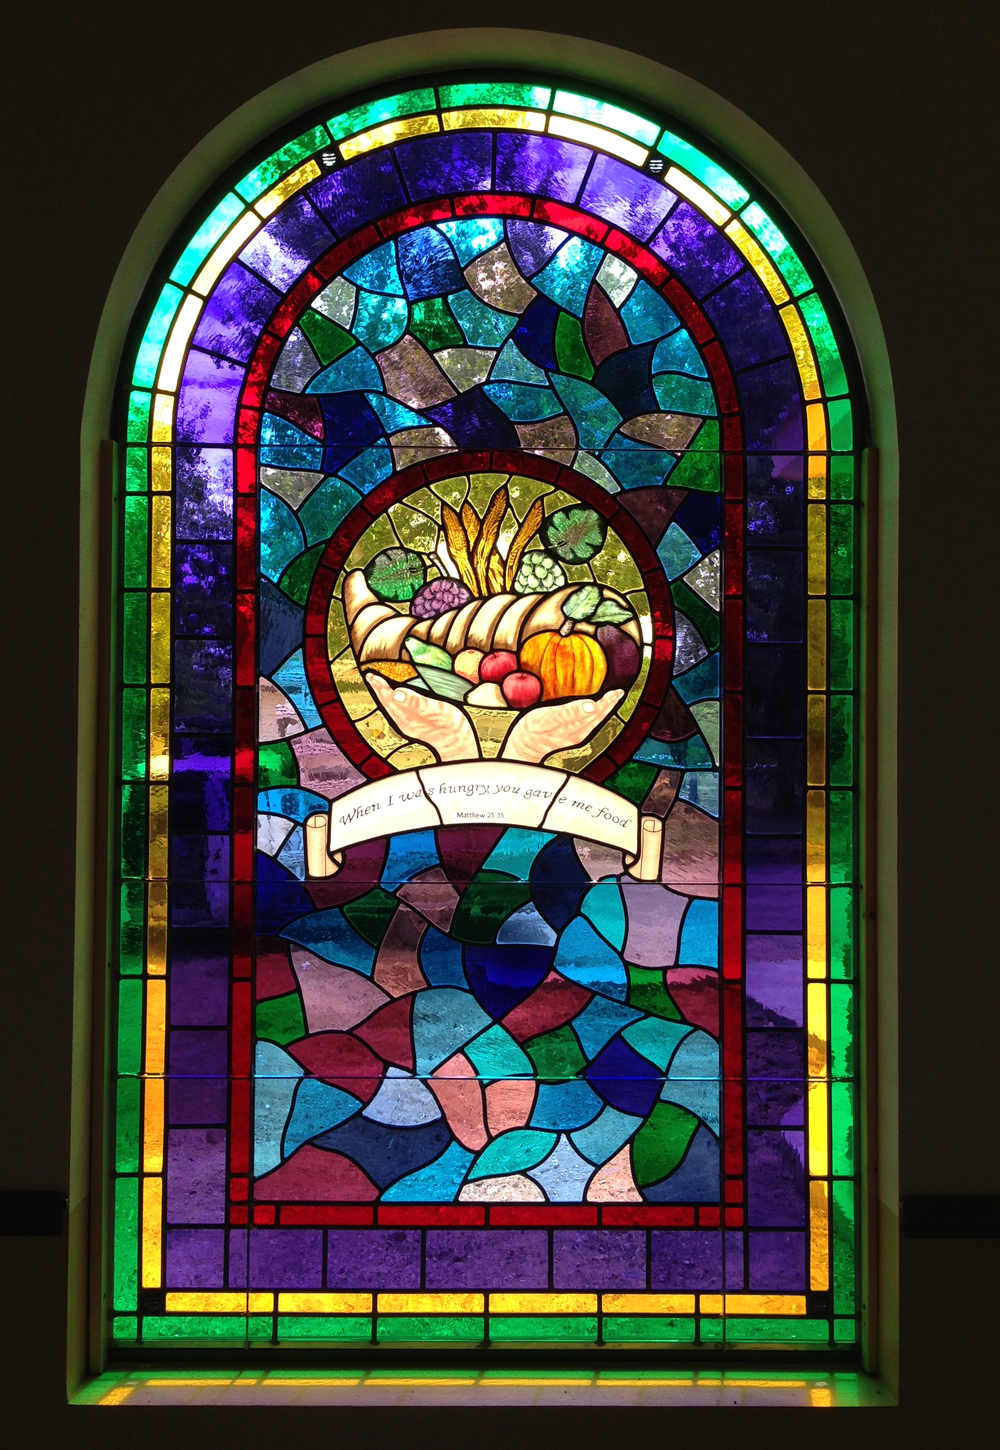 Stained Glass Window At The First United Methodist Church In Brady, Texas